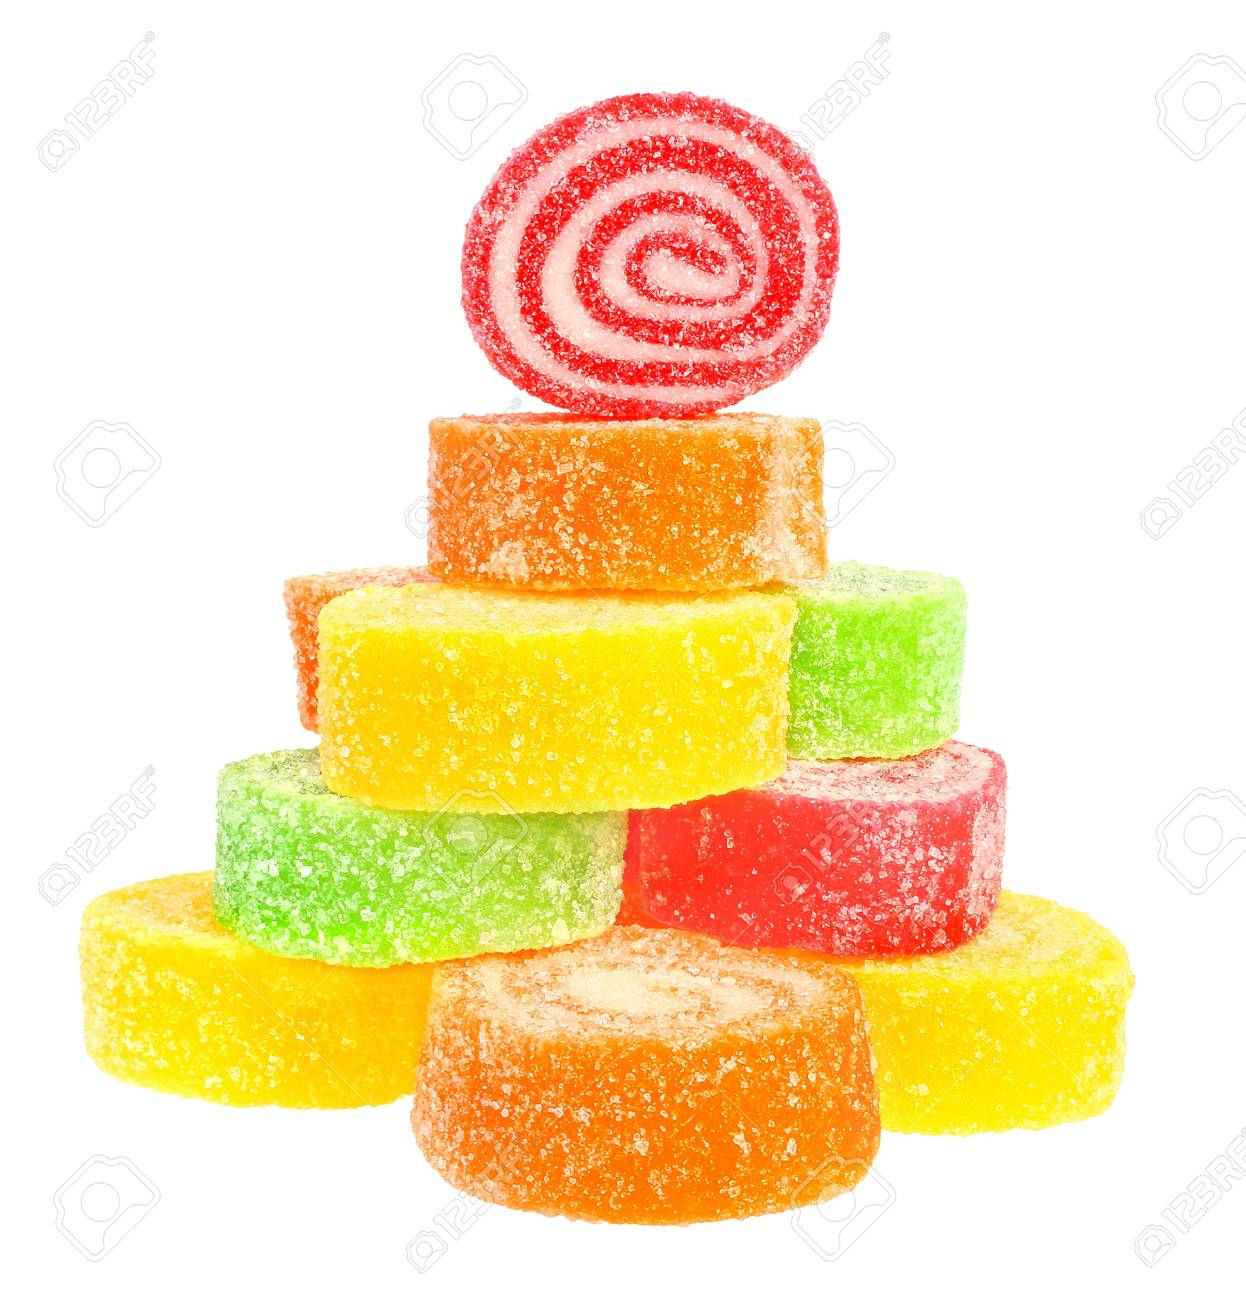 Candy on a white background. Stock Photo - 9857480